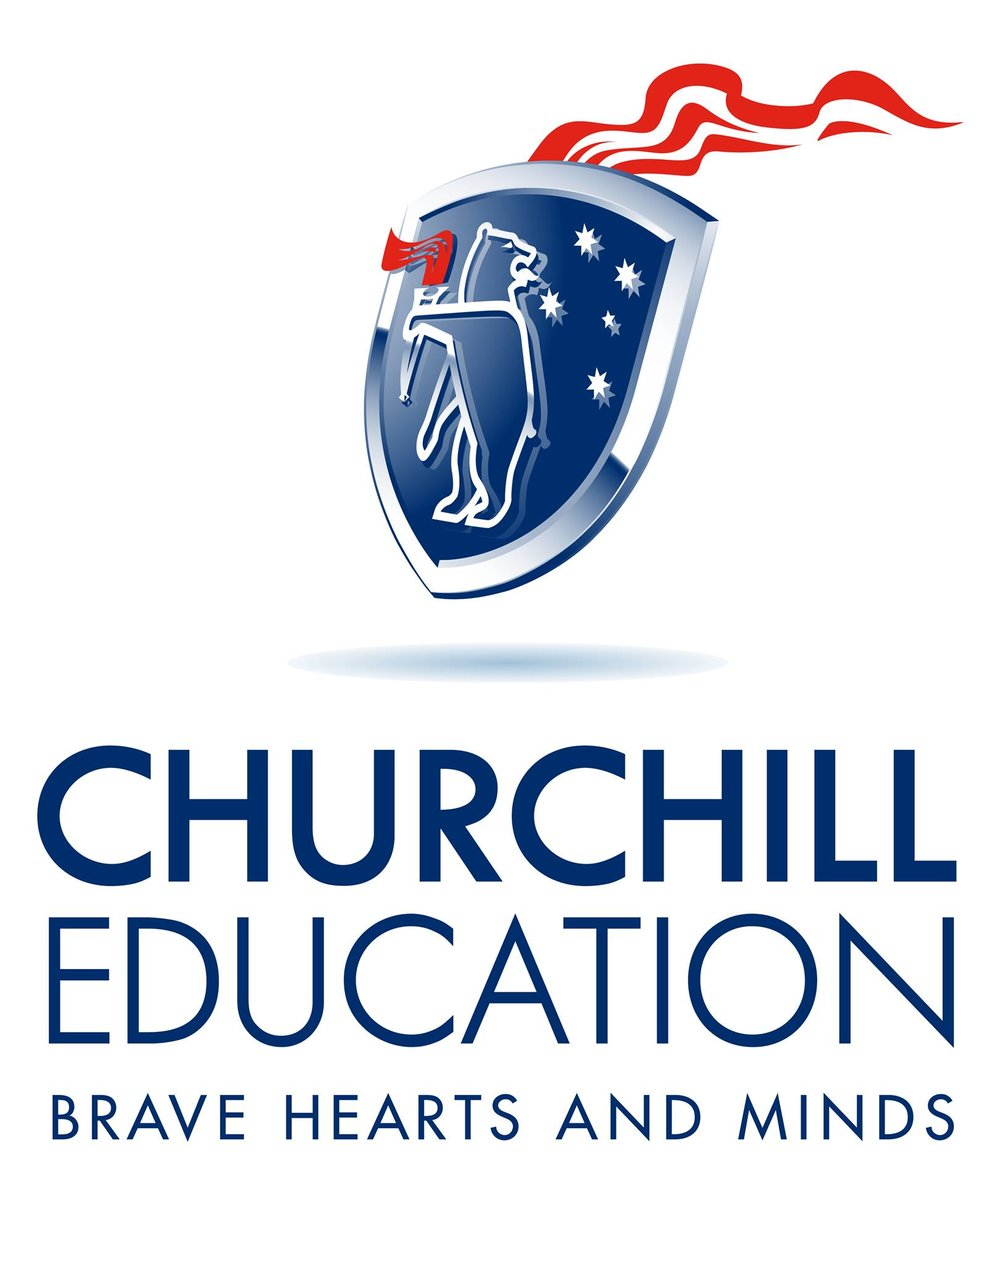 Churchill Education